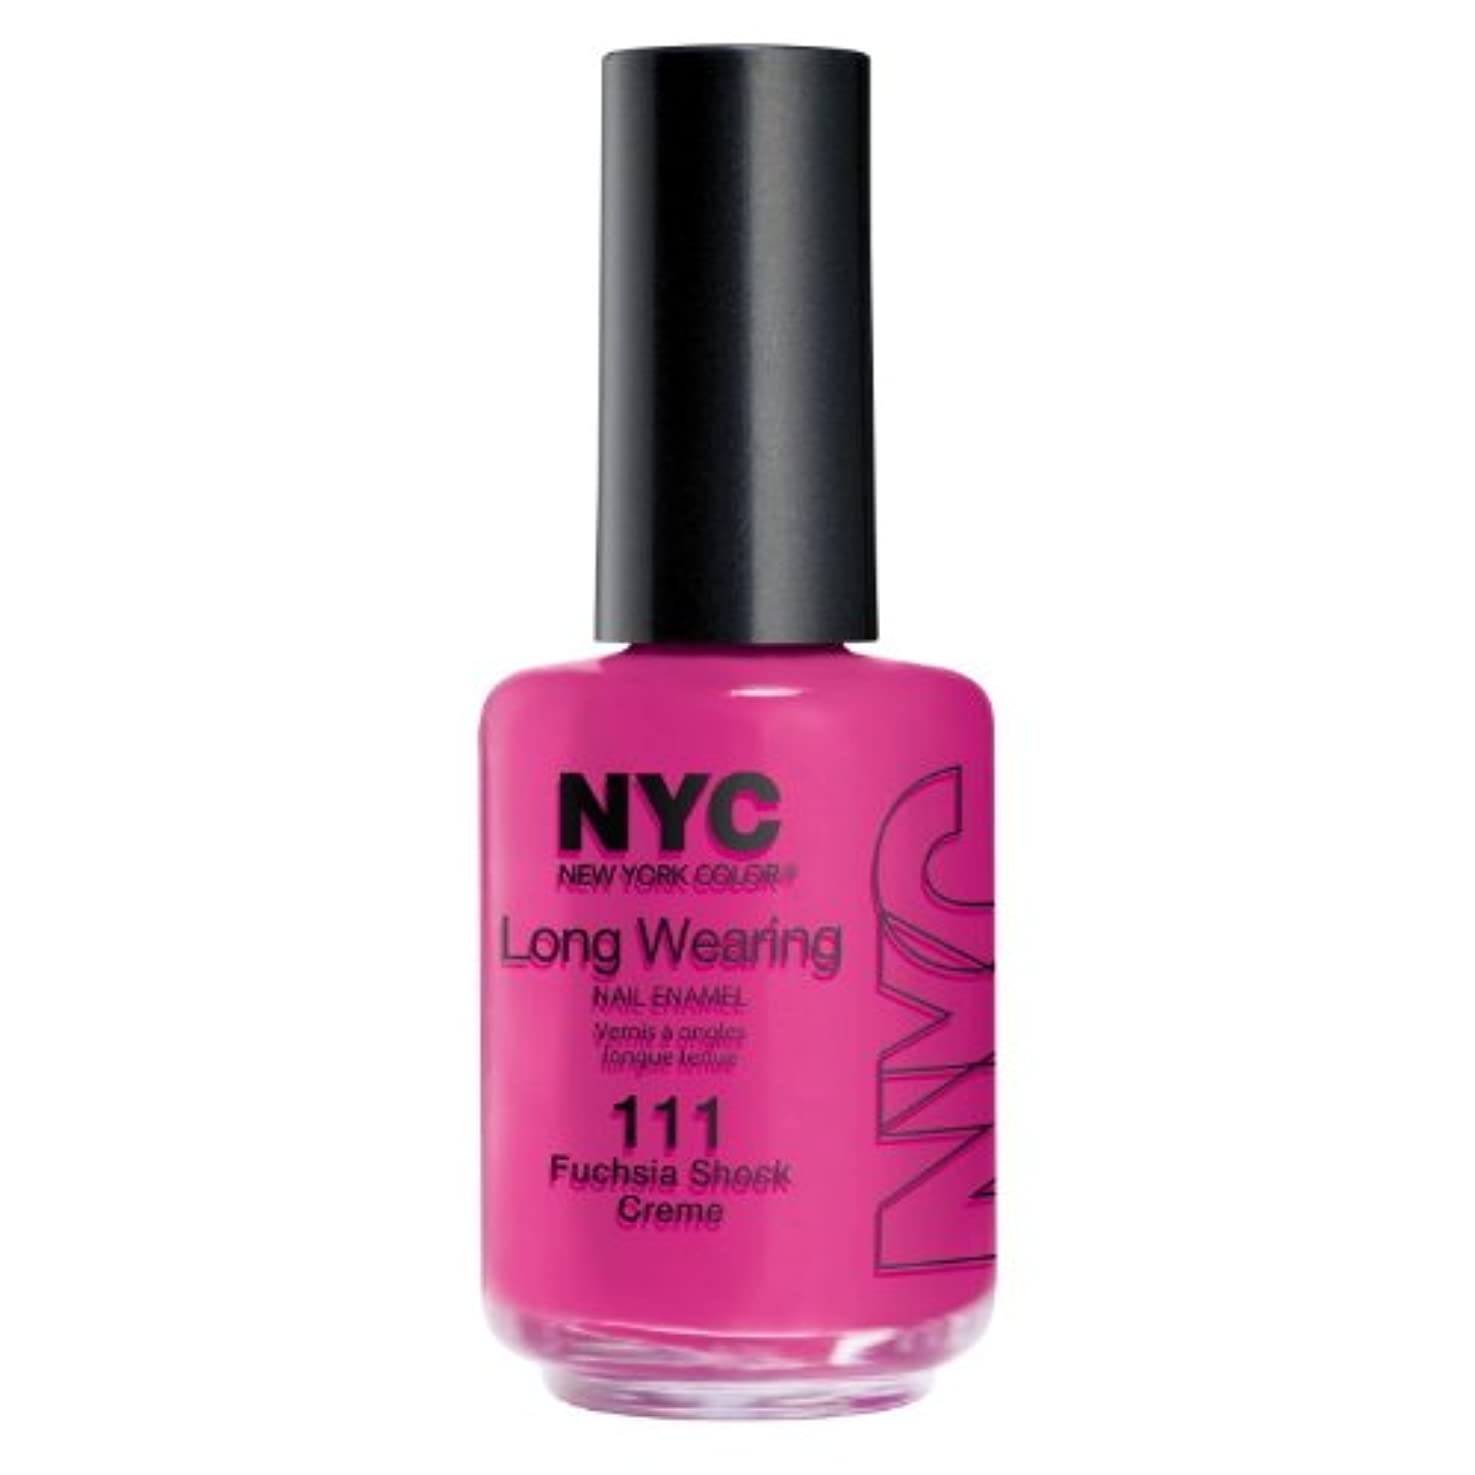 大胆な分岐する申請中(6 Pack) NYC Long Wearing Nail Enamel - Fuchisia Shock Creme (並行輸入品)